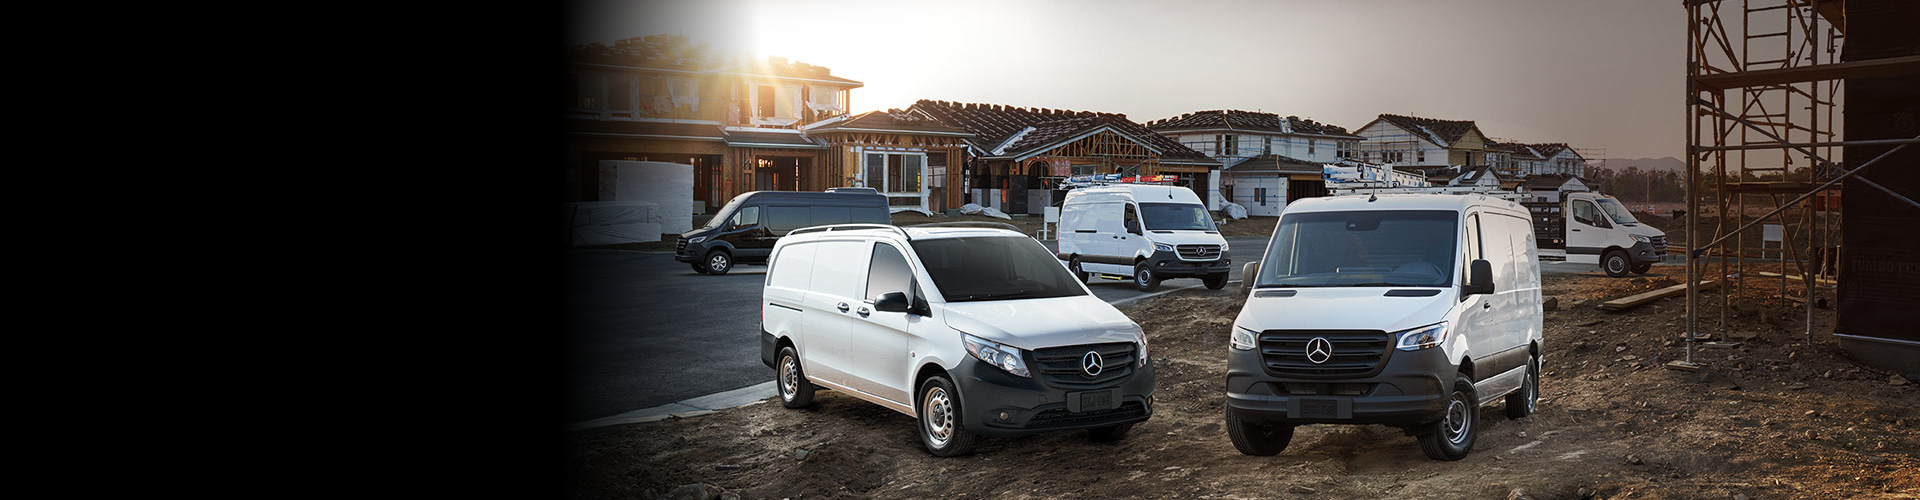 White Cargo Vans Parked at Construction Site